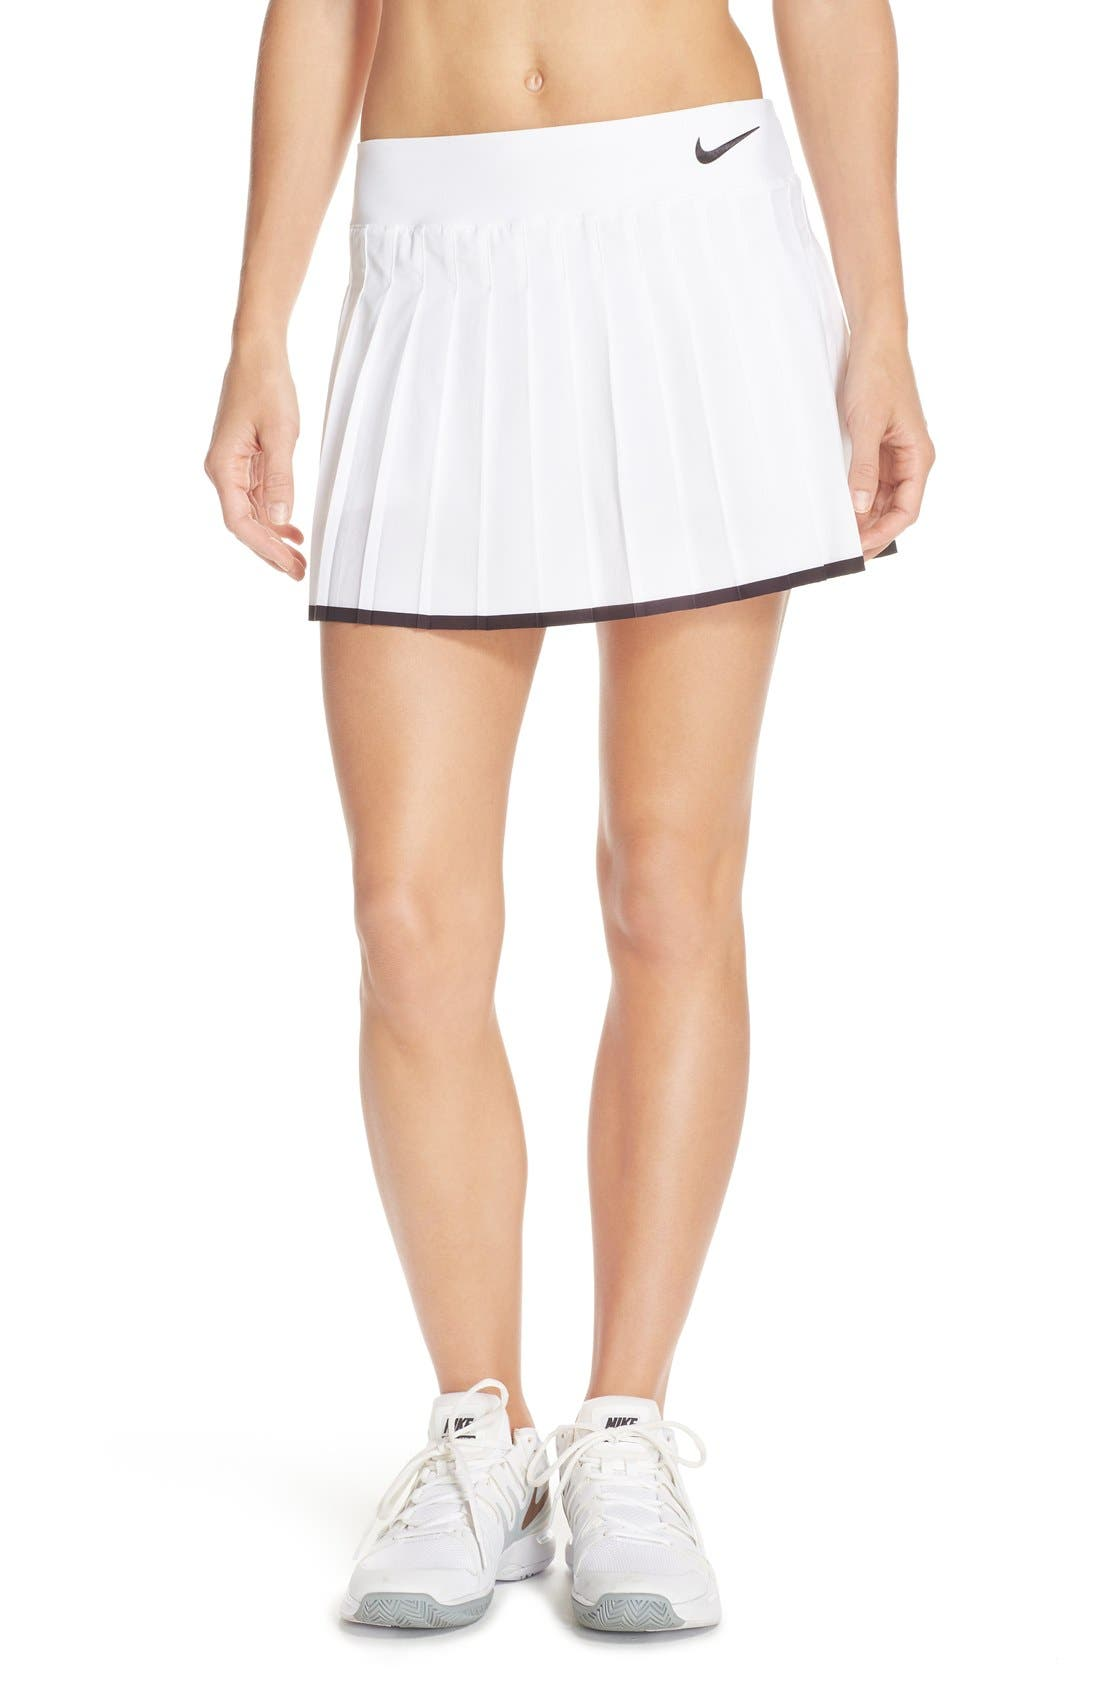 Nike 'Victory' Pleat Dri-FIT Tennis Skirt